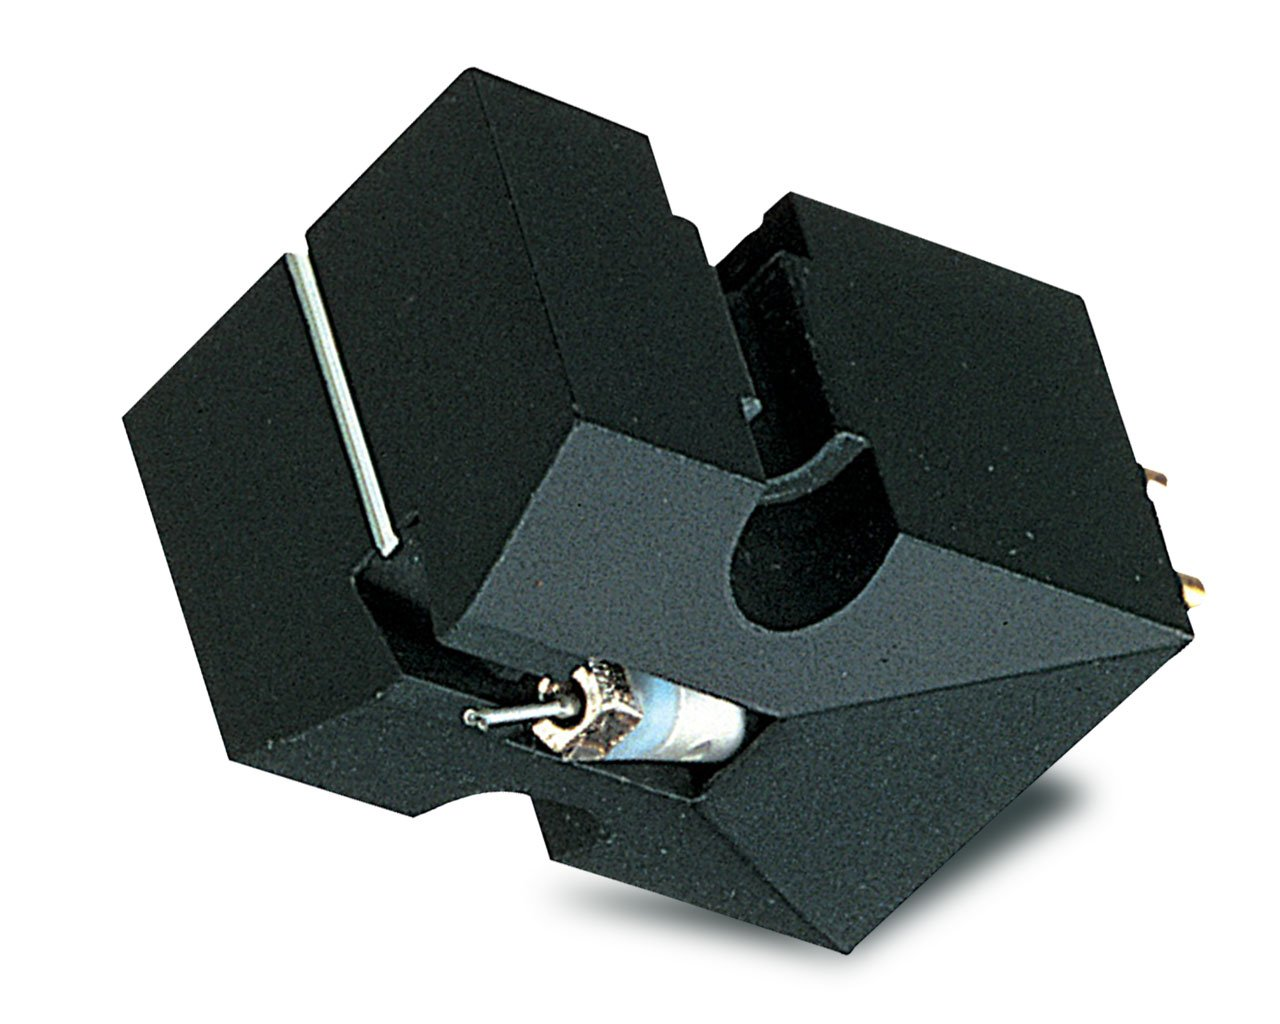 Denon DL 103 Moving Coil Cartridge by Denon